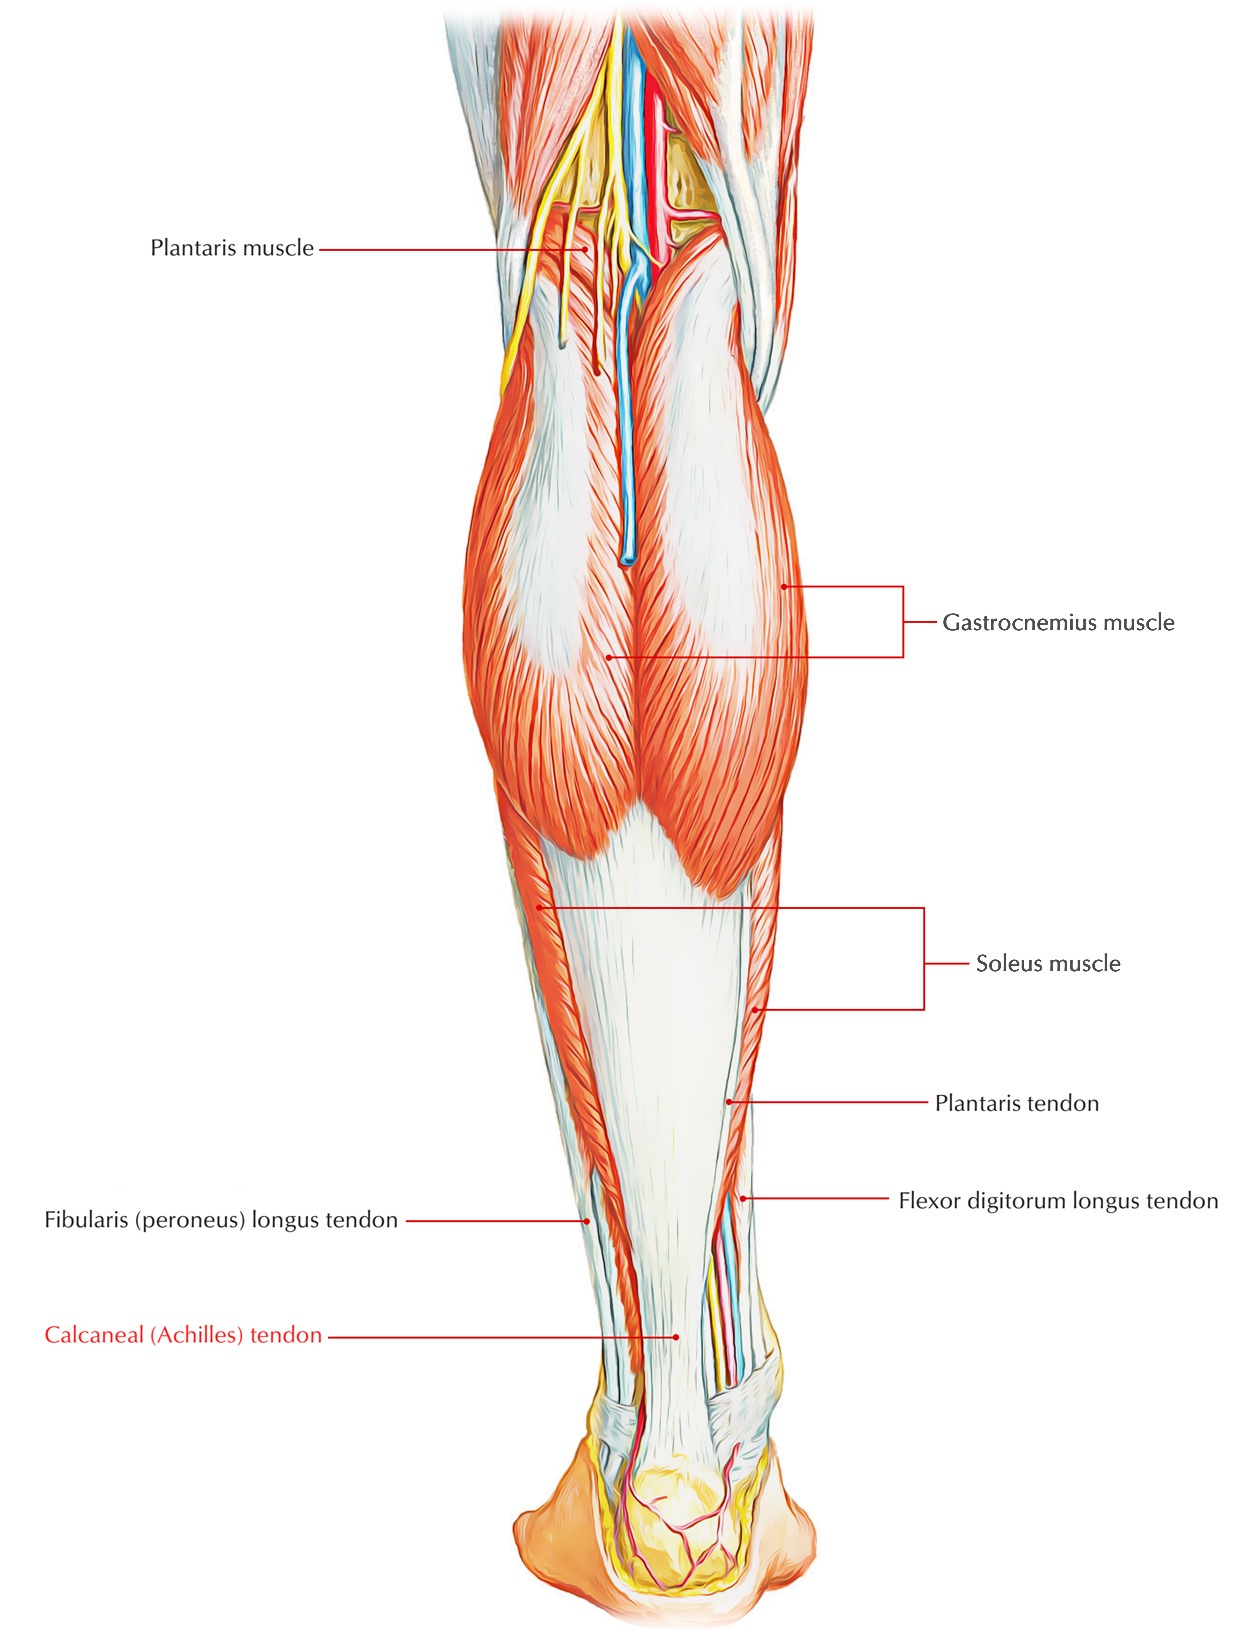 Easy Notes On 【Calcaneal (Achilles) Tendon】Learn in Just 3 Minutes!